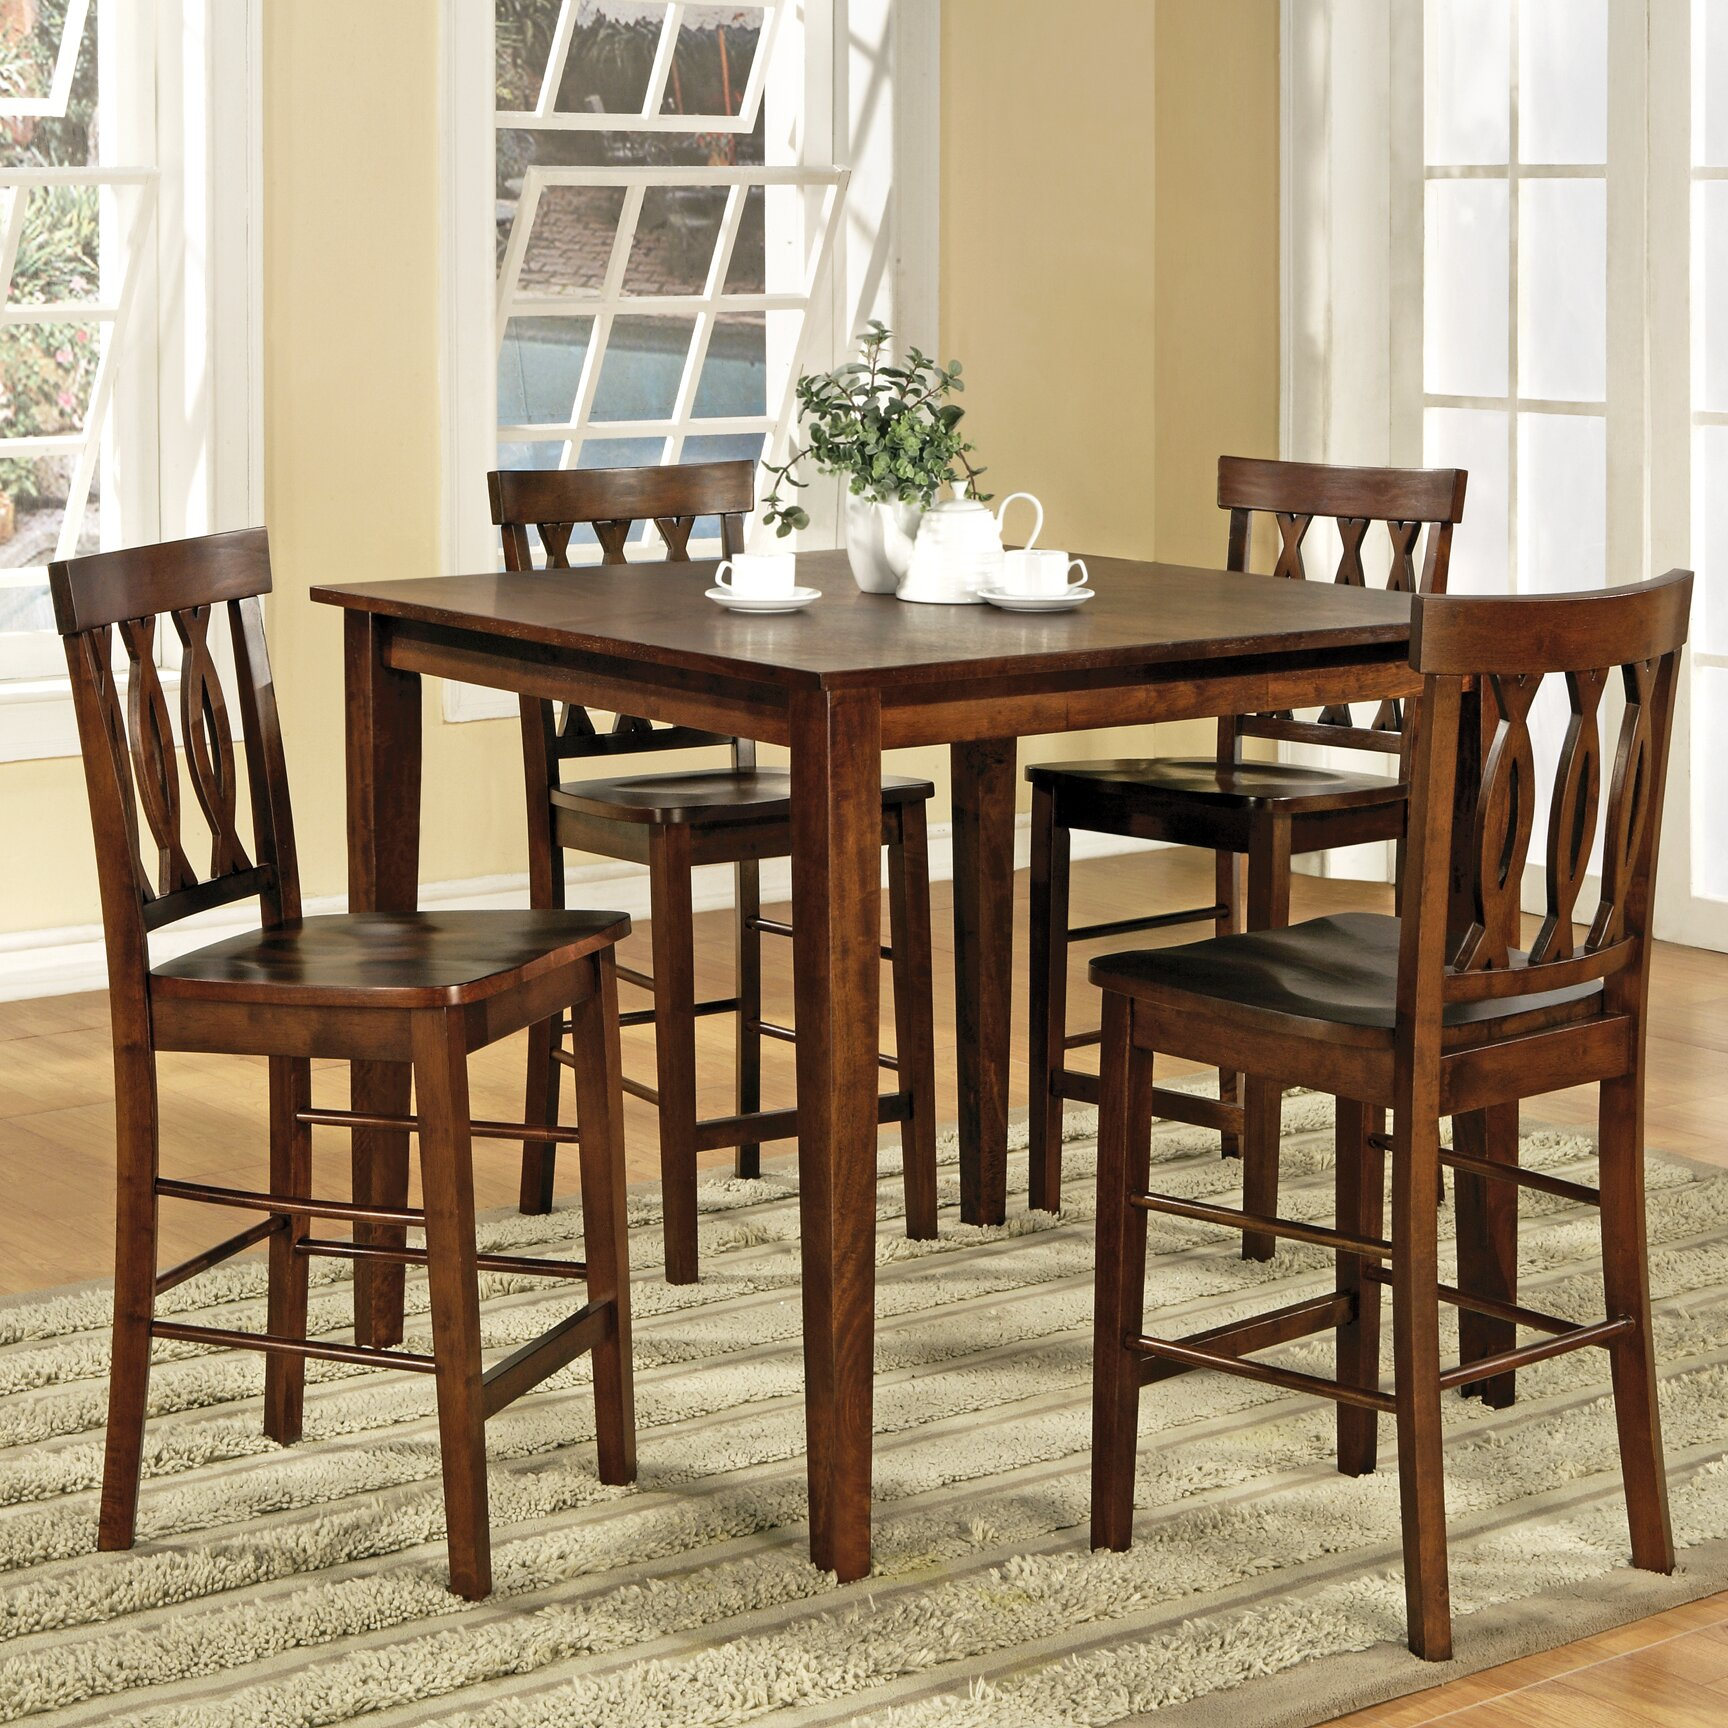 Steve silver furniture richmond 5 piece counter height for Counter height dining set